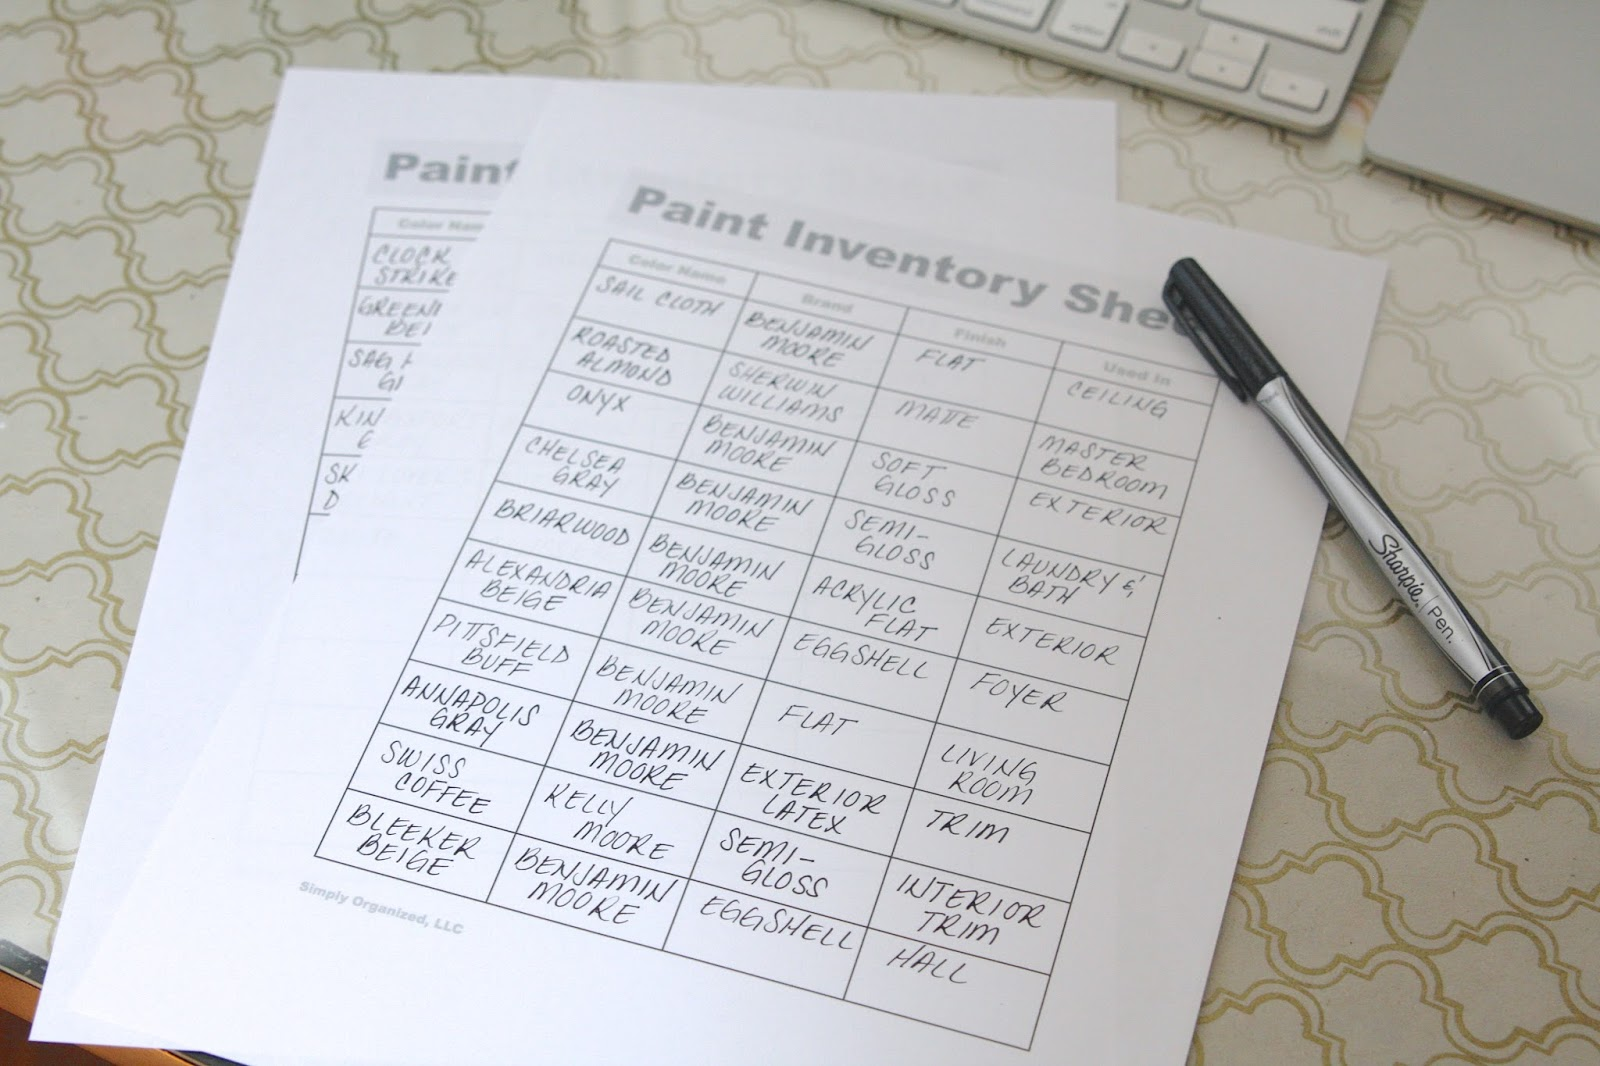 Paint Inventory Sheet Free Printable simply organized